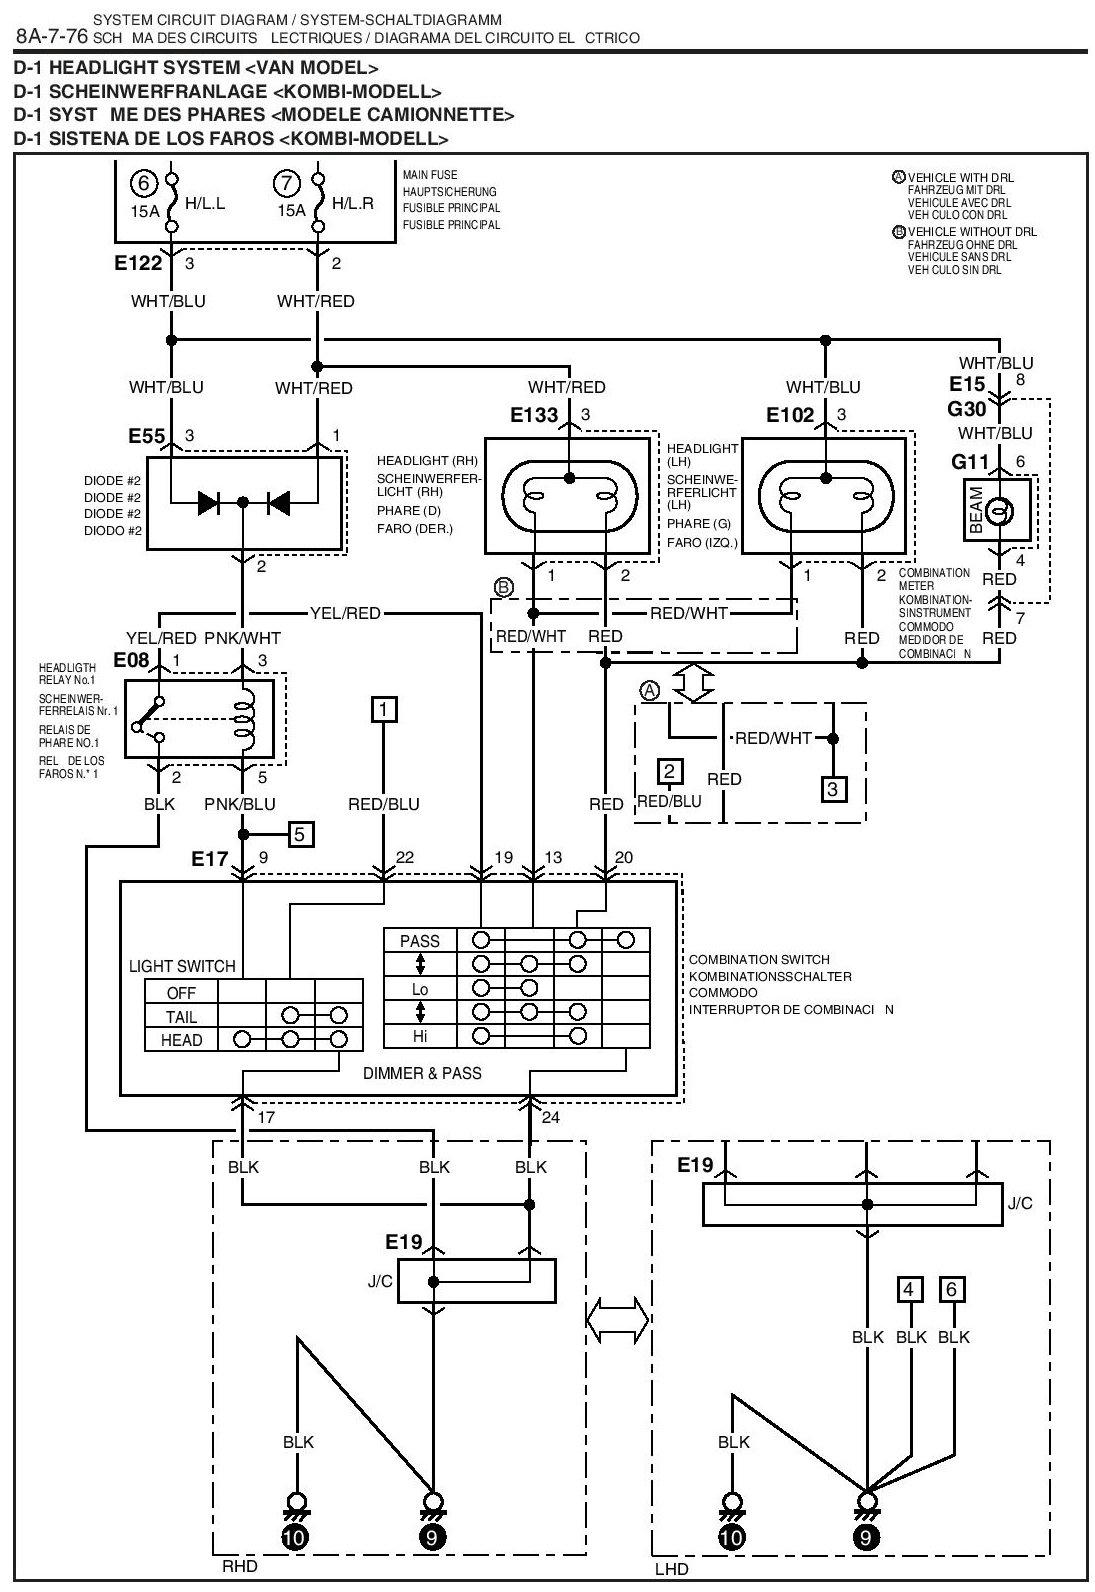 8qotqex62c6bikqzg?resize\=665%2C967 suzuki jimny towbar wiring diagram chopper wiring diagram \u2022 45 63  at mifinder.co